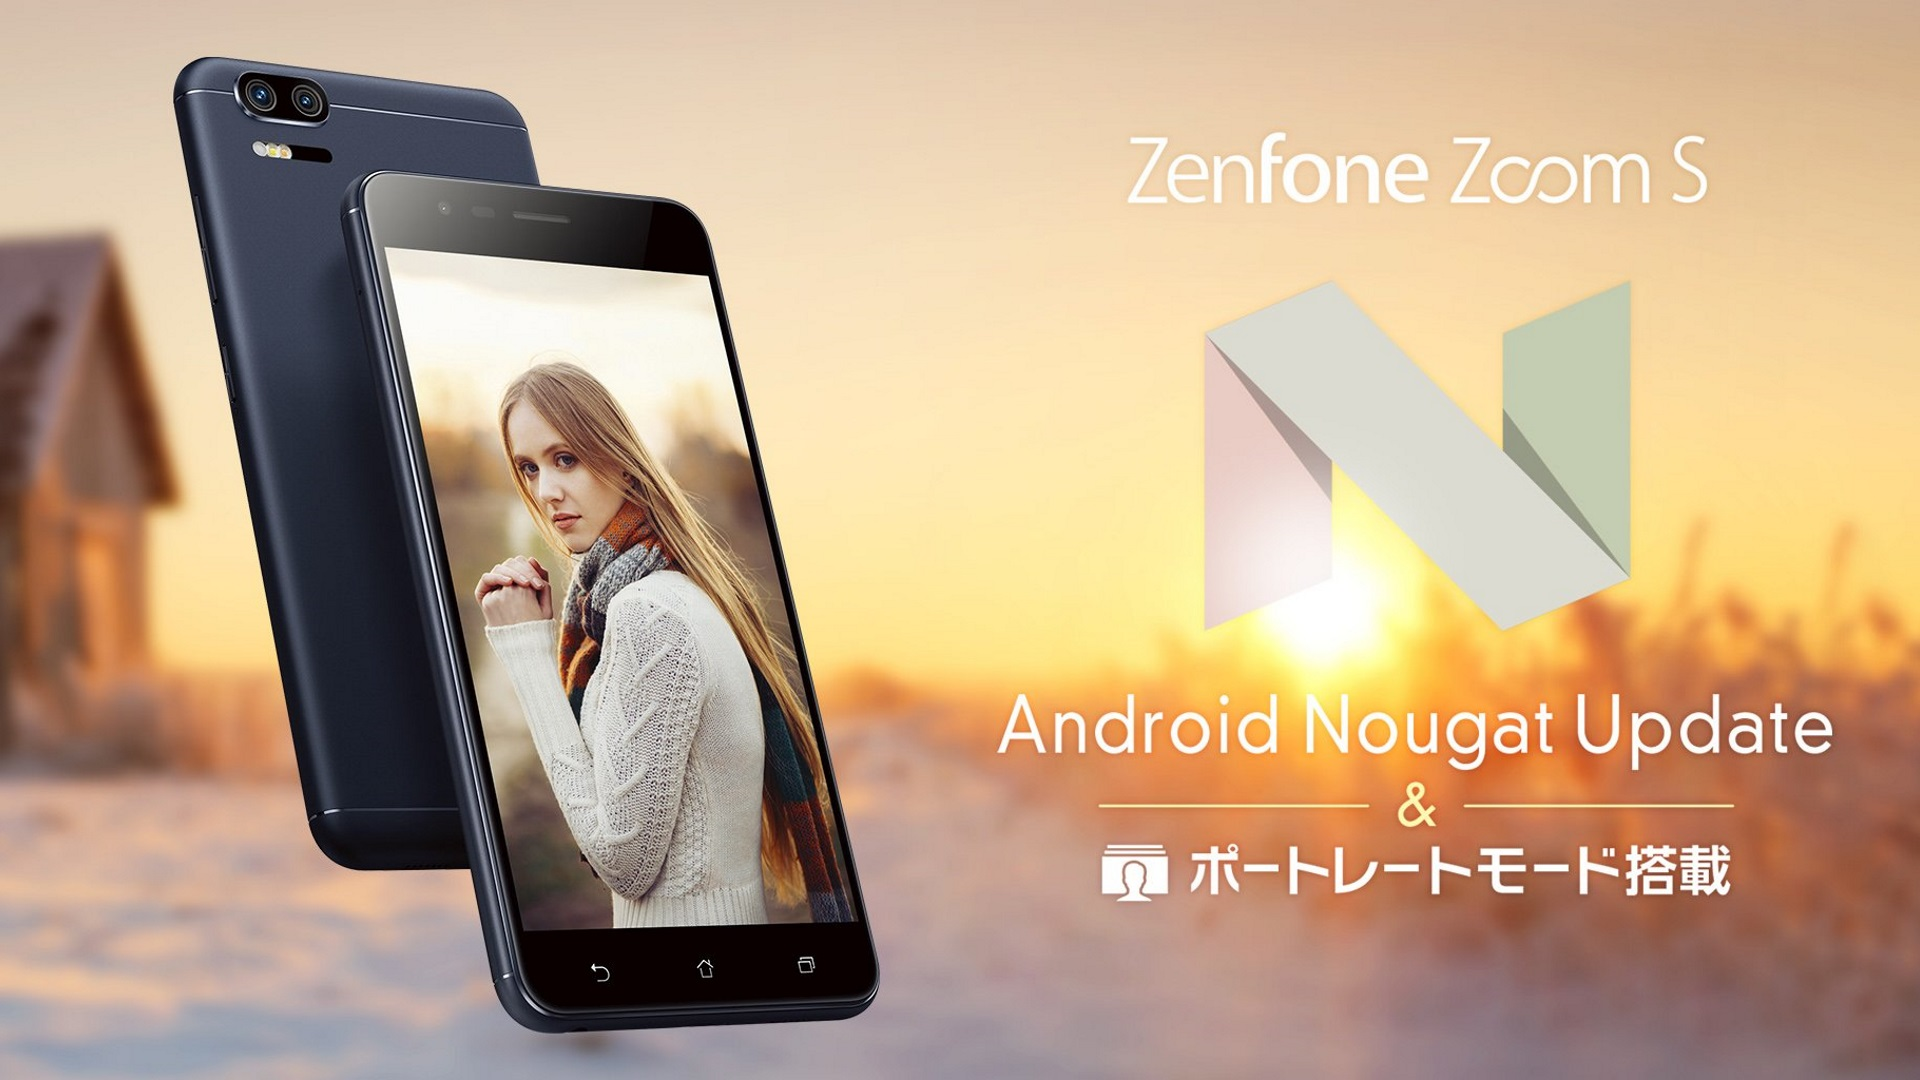 「ZenFone Zoom S」にAndroid 7.1アップデートが配信、8月16日より